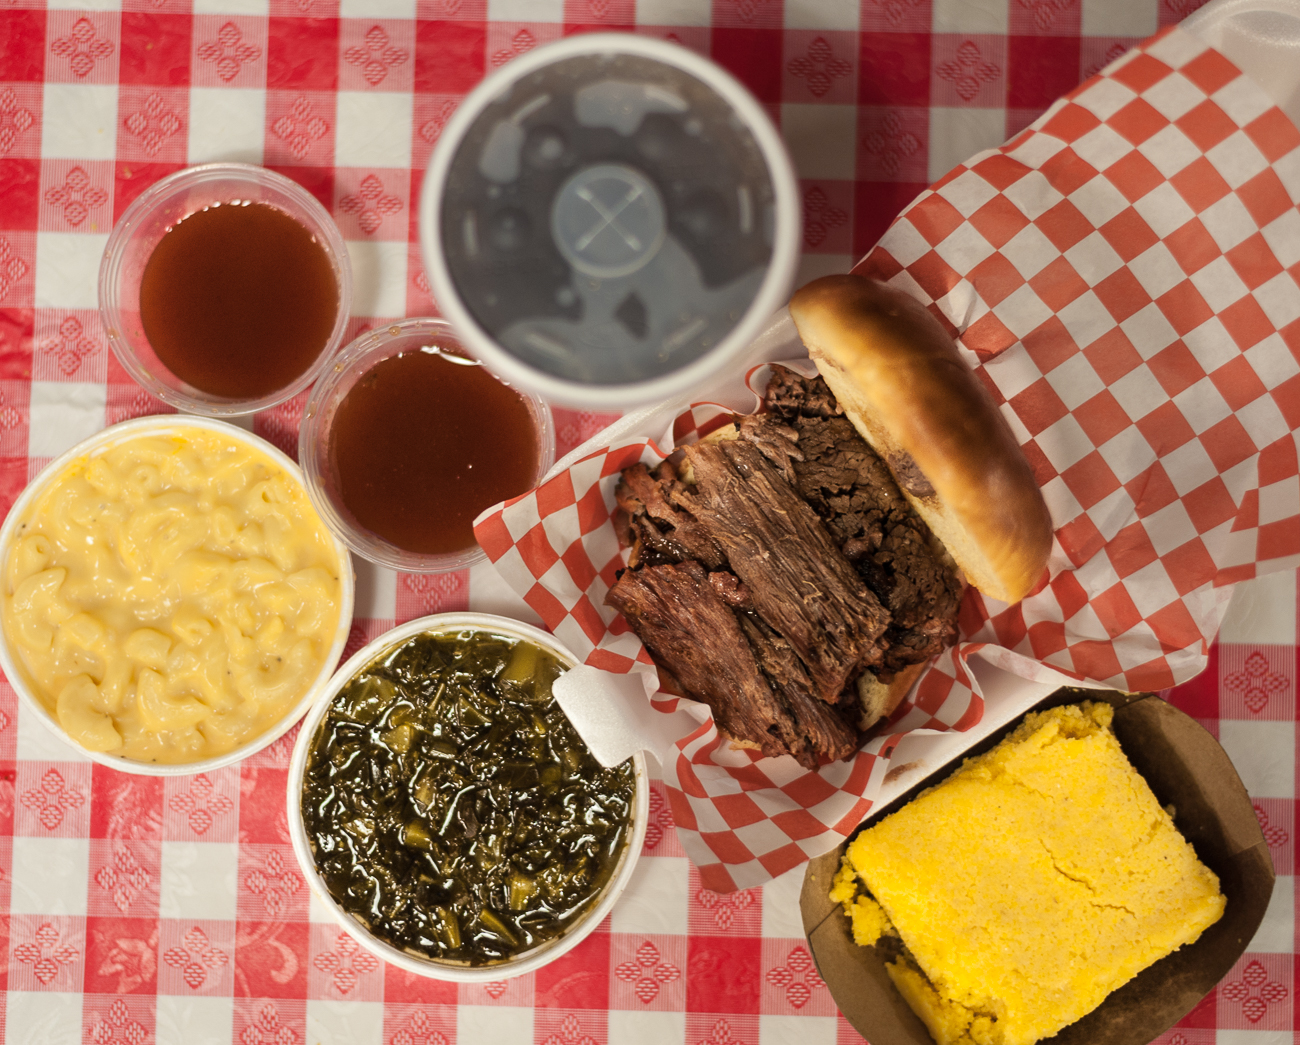 Collard greens, mac & cheese soft drink, full brisket sandwich, and sweet bread / Image: Kellie Coleman // Published: 6.19.20